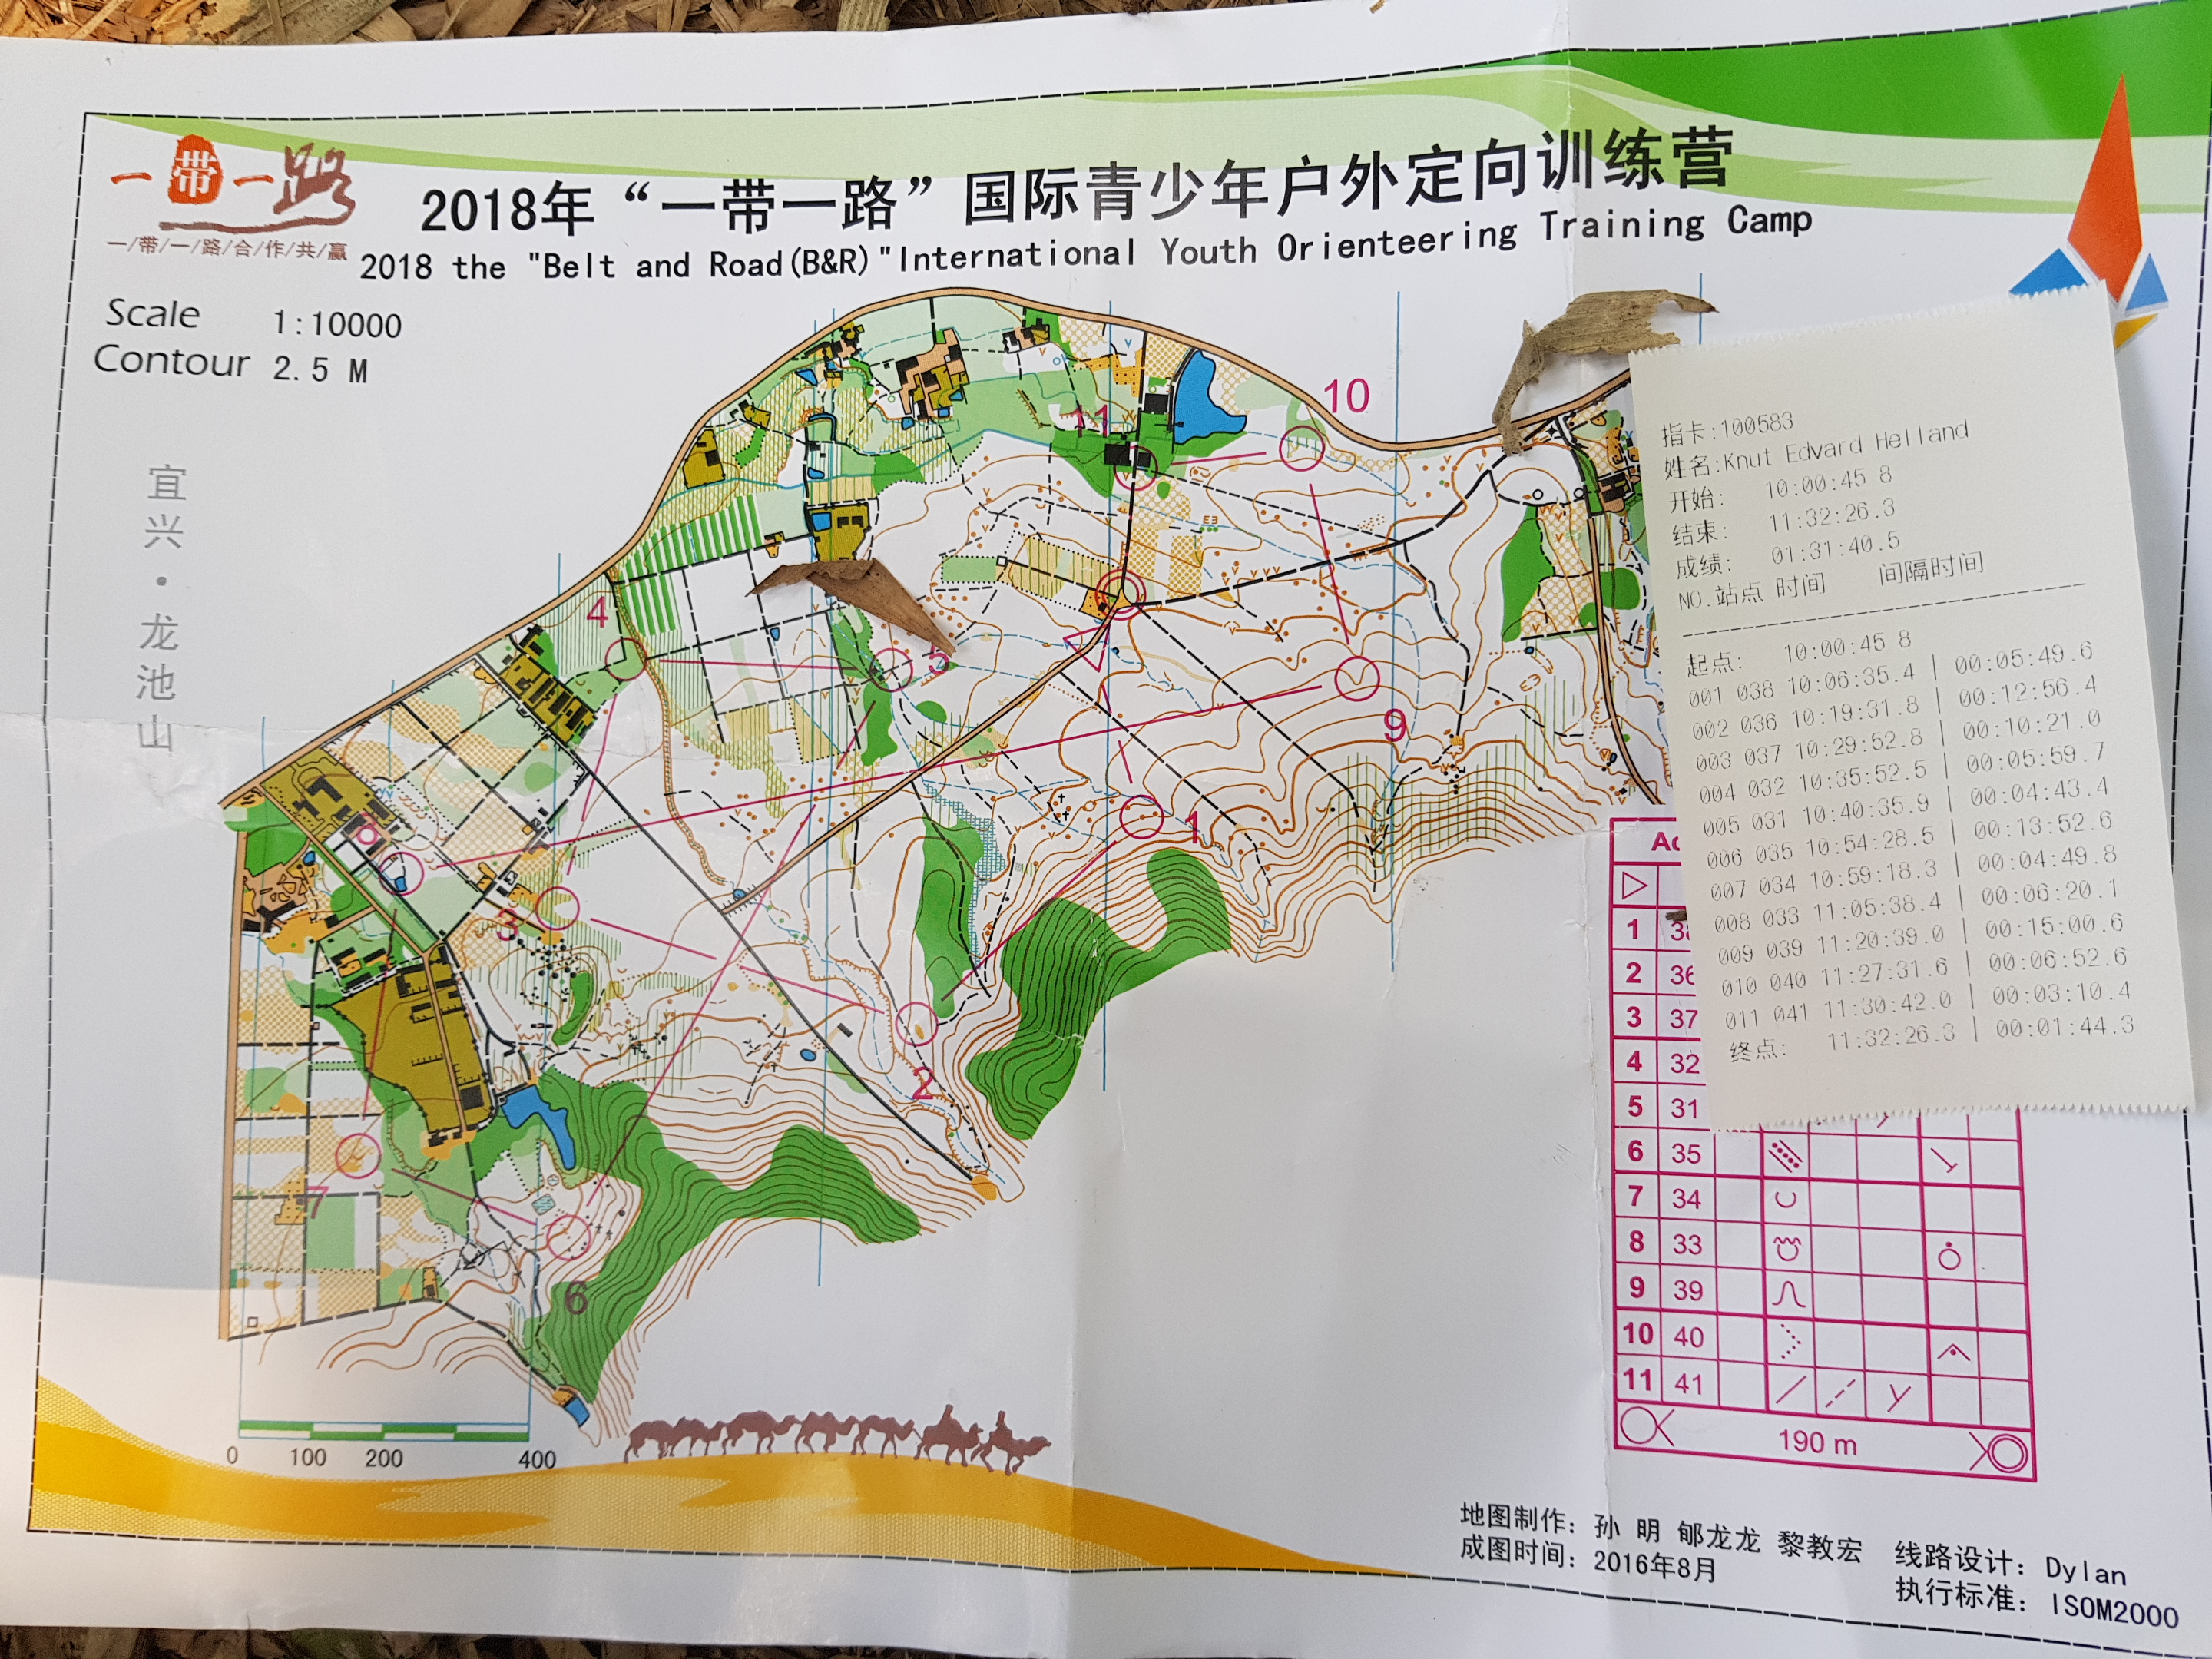 Belt and Road International Youth Orienteering Camp (31.10.2018)